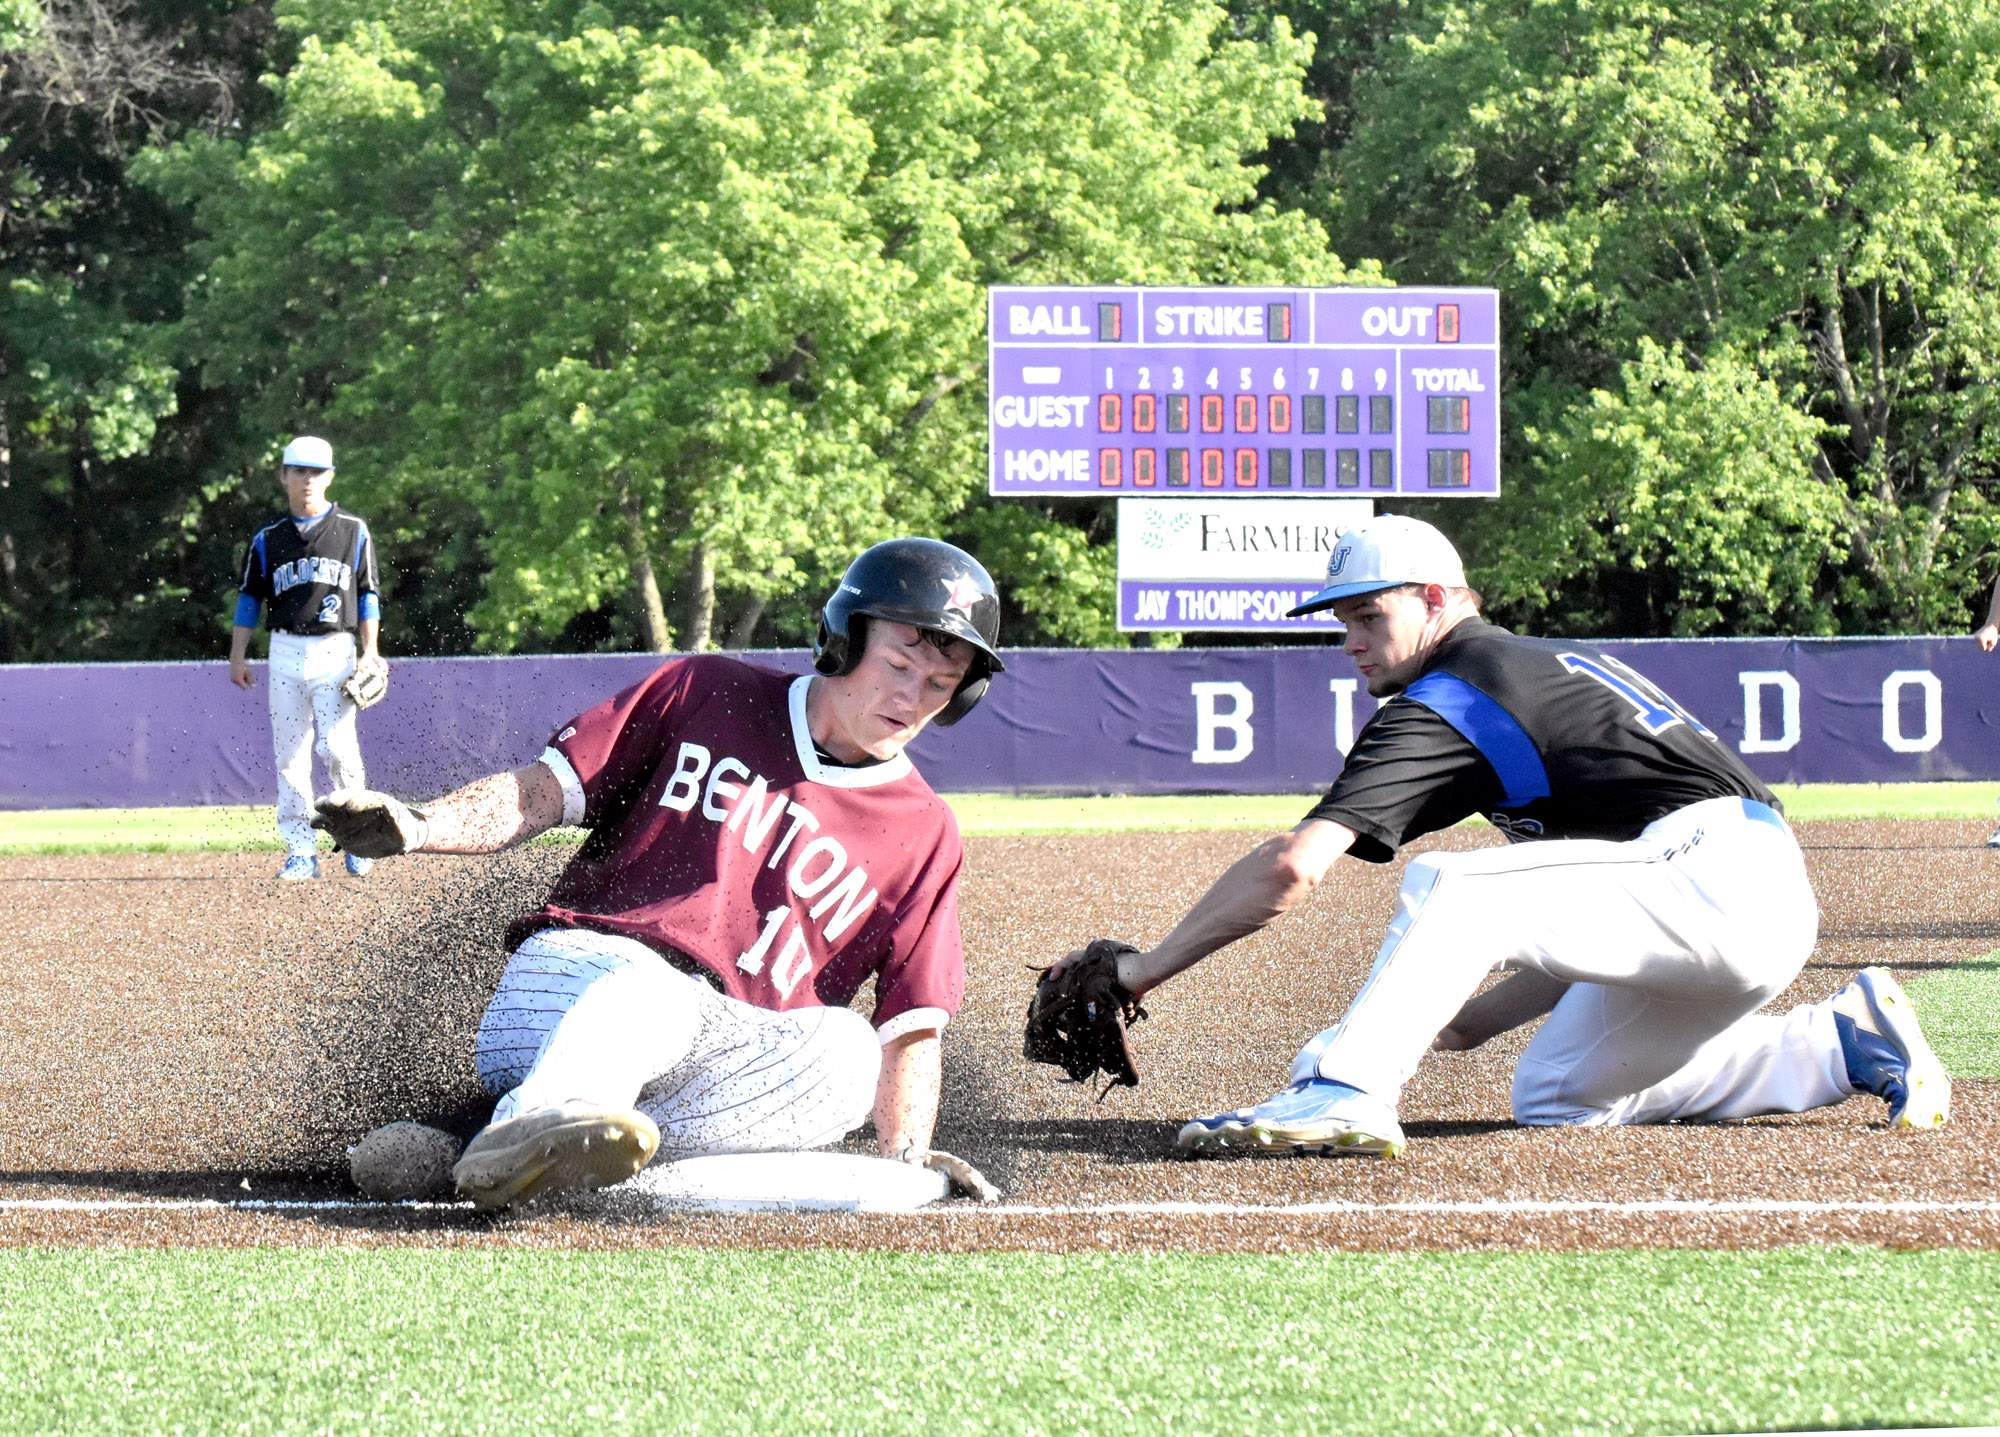 Benton High School senior Hamilton Page slides safely into third base during the sixth inning. Page would eventually score the go-ahead run as the Rangers beat A-J 3-1 at Harrisburg on Wednesday.